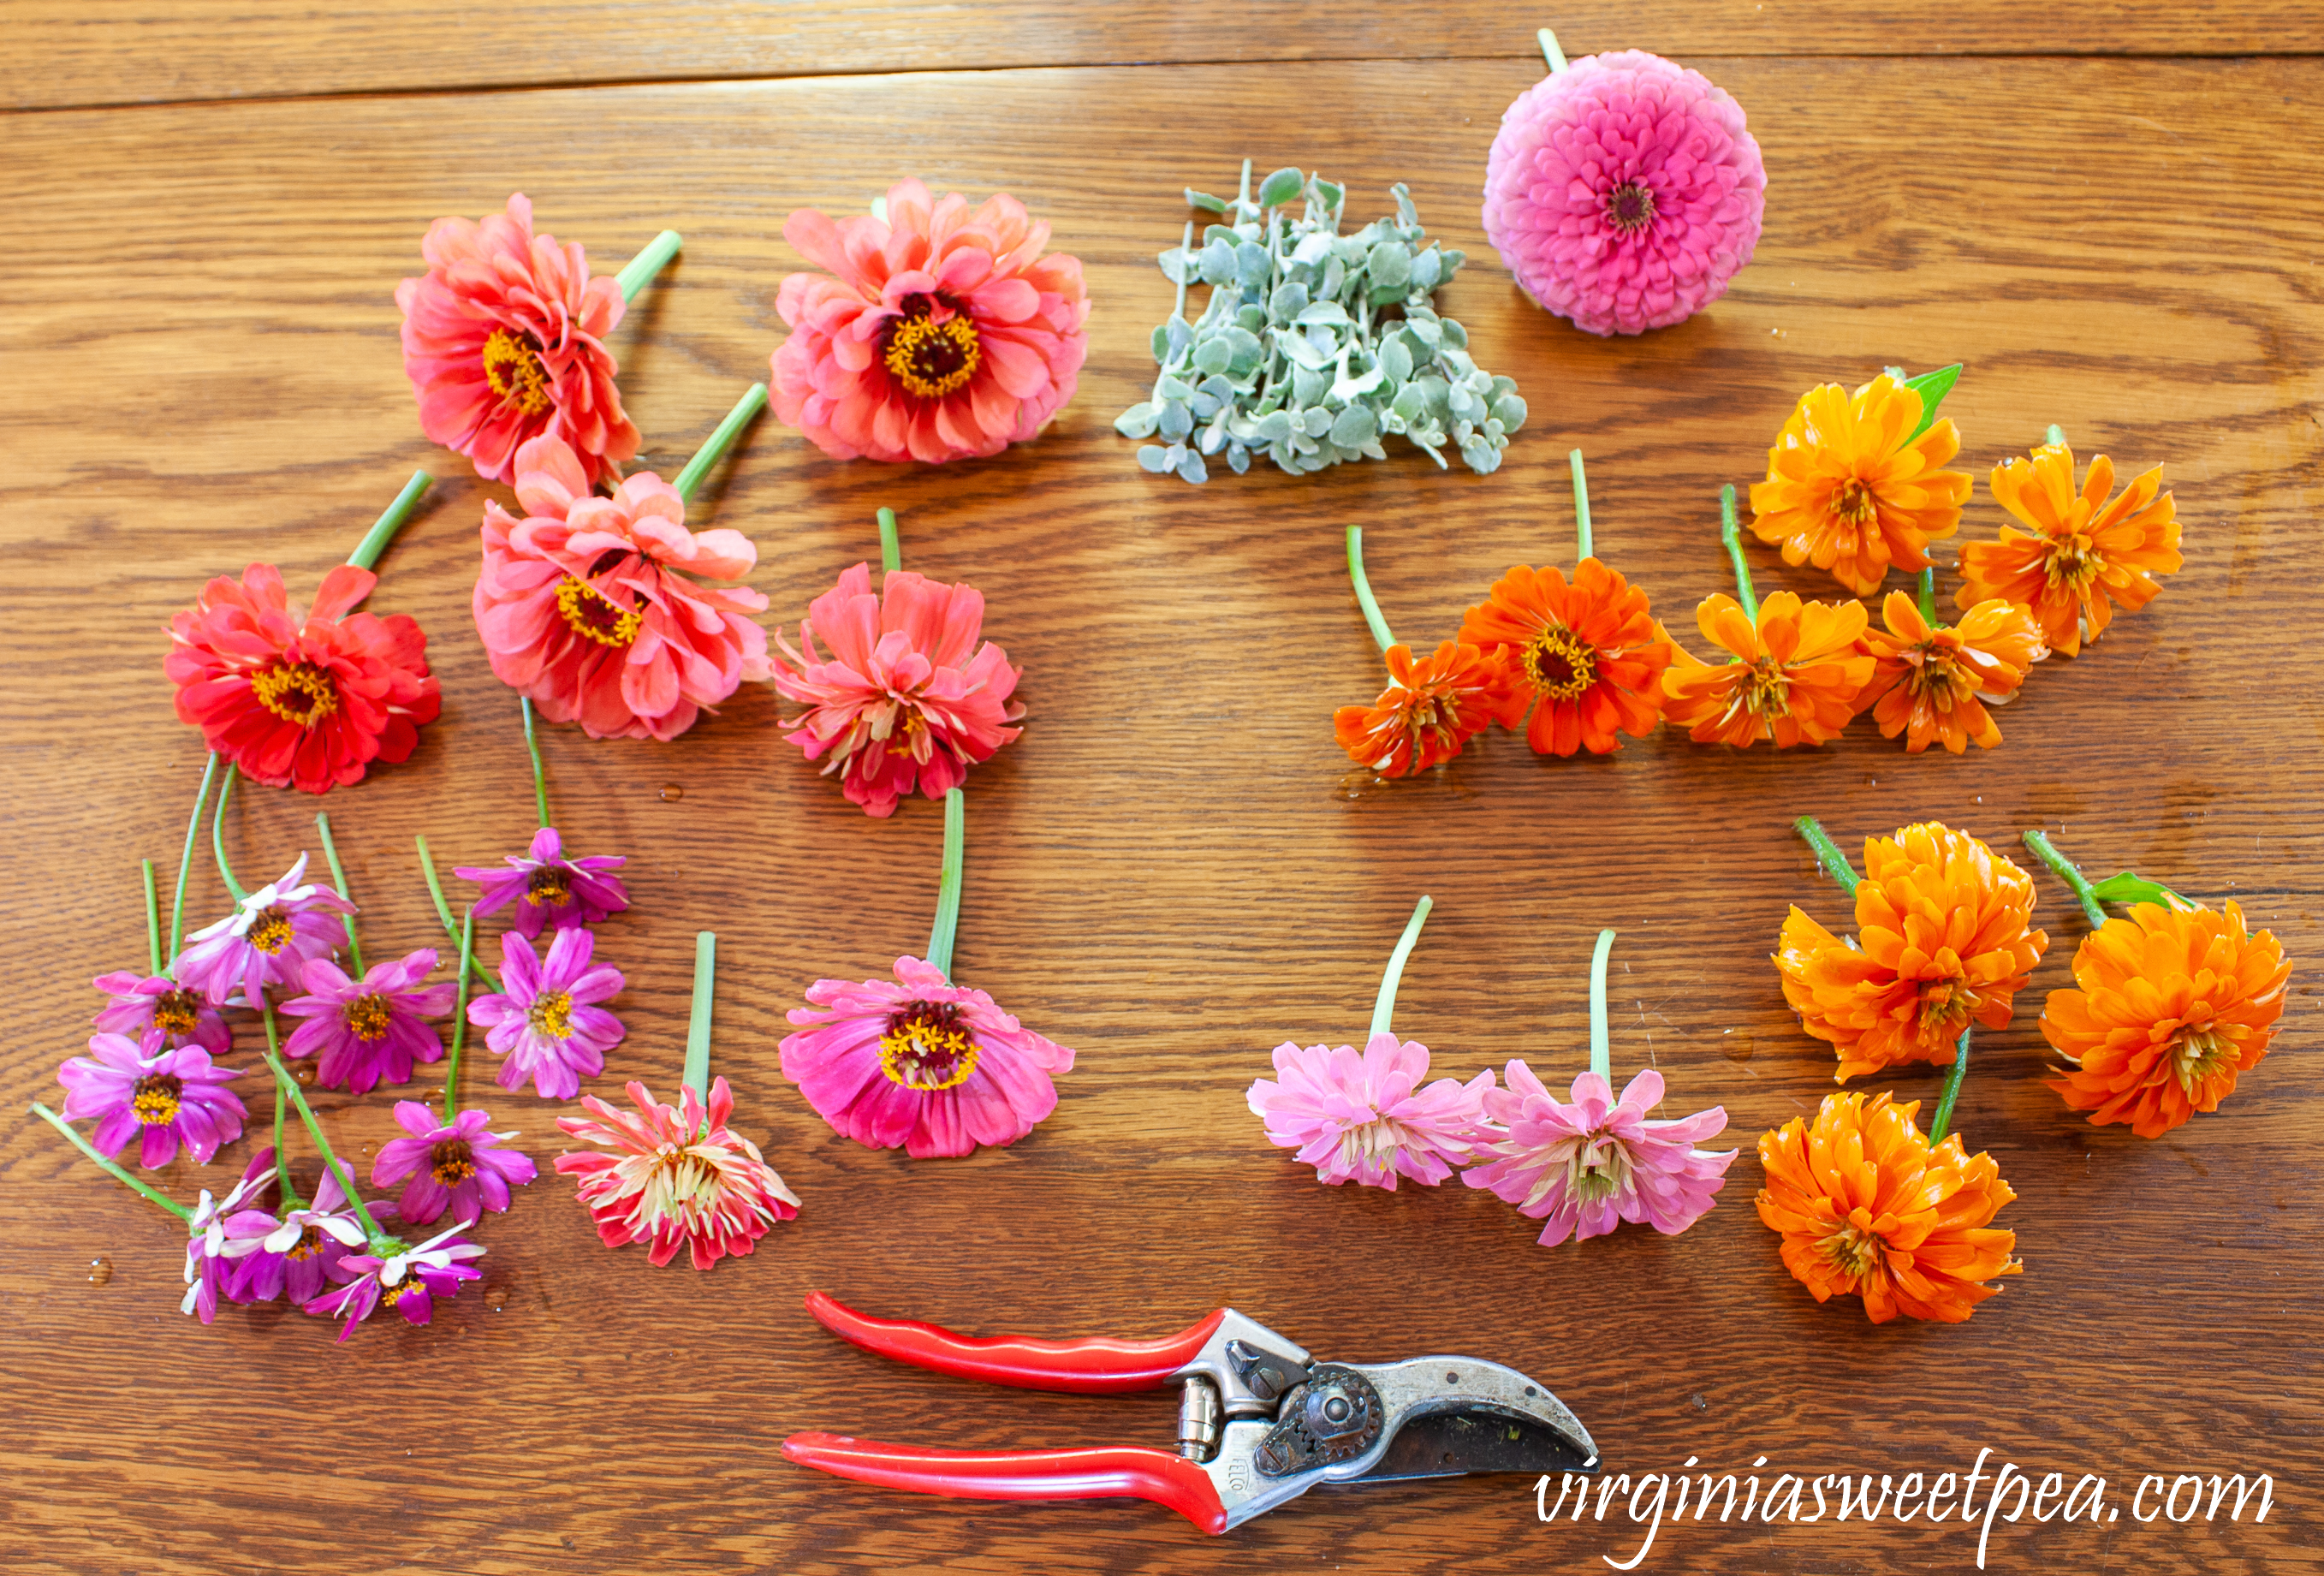 Cut Zinnias to use for an easy summer table centerpiece.